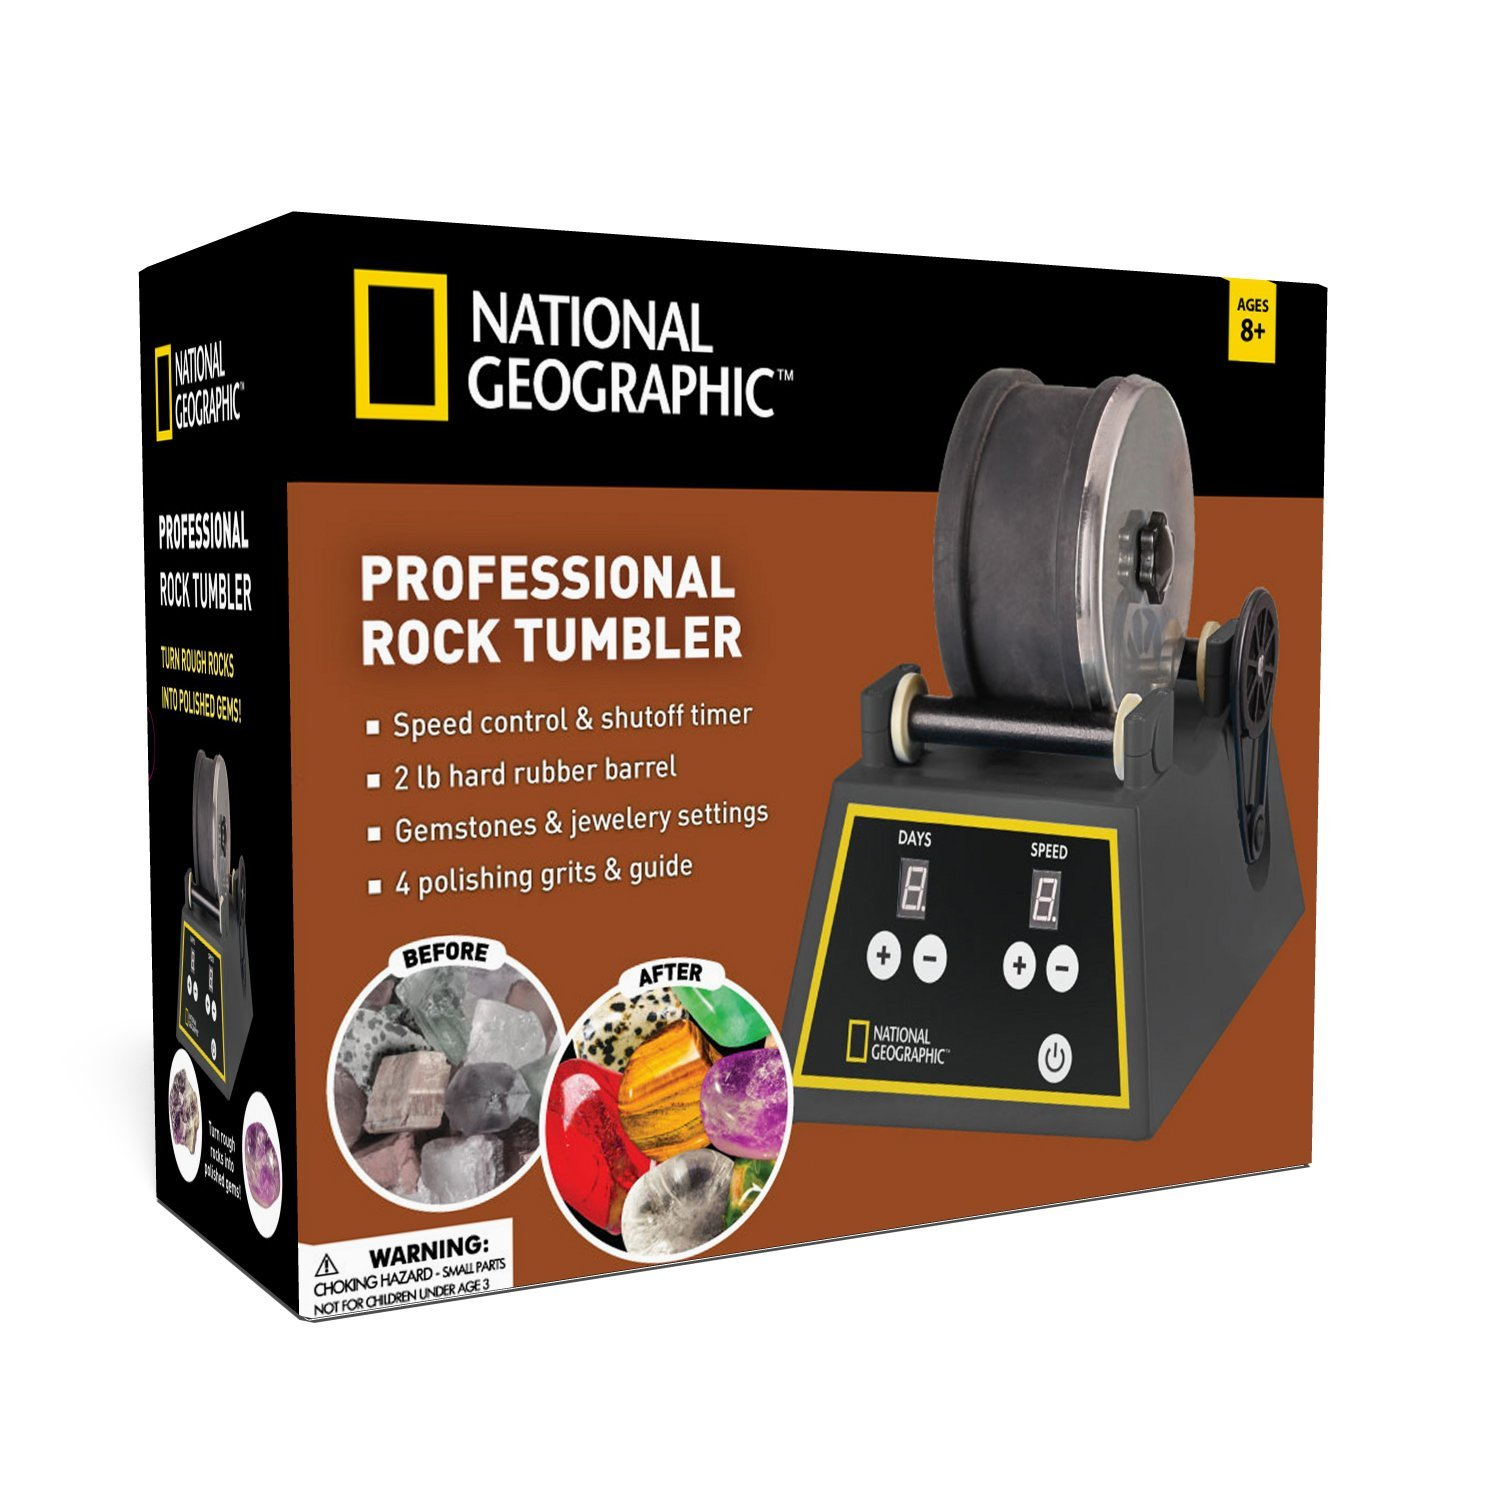 Professional Rock Tumbler by NATIONAL GEOGRAPHIC (Improved Quality Sept. 2016)